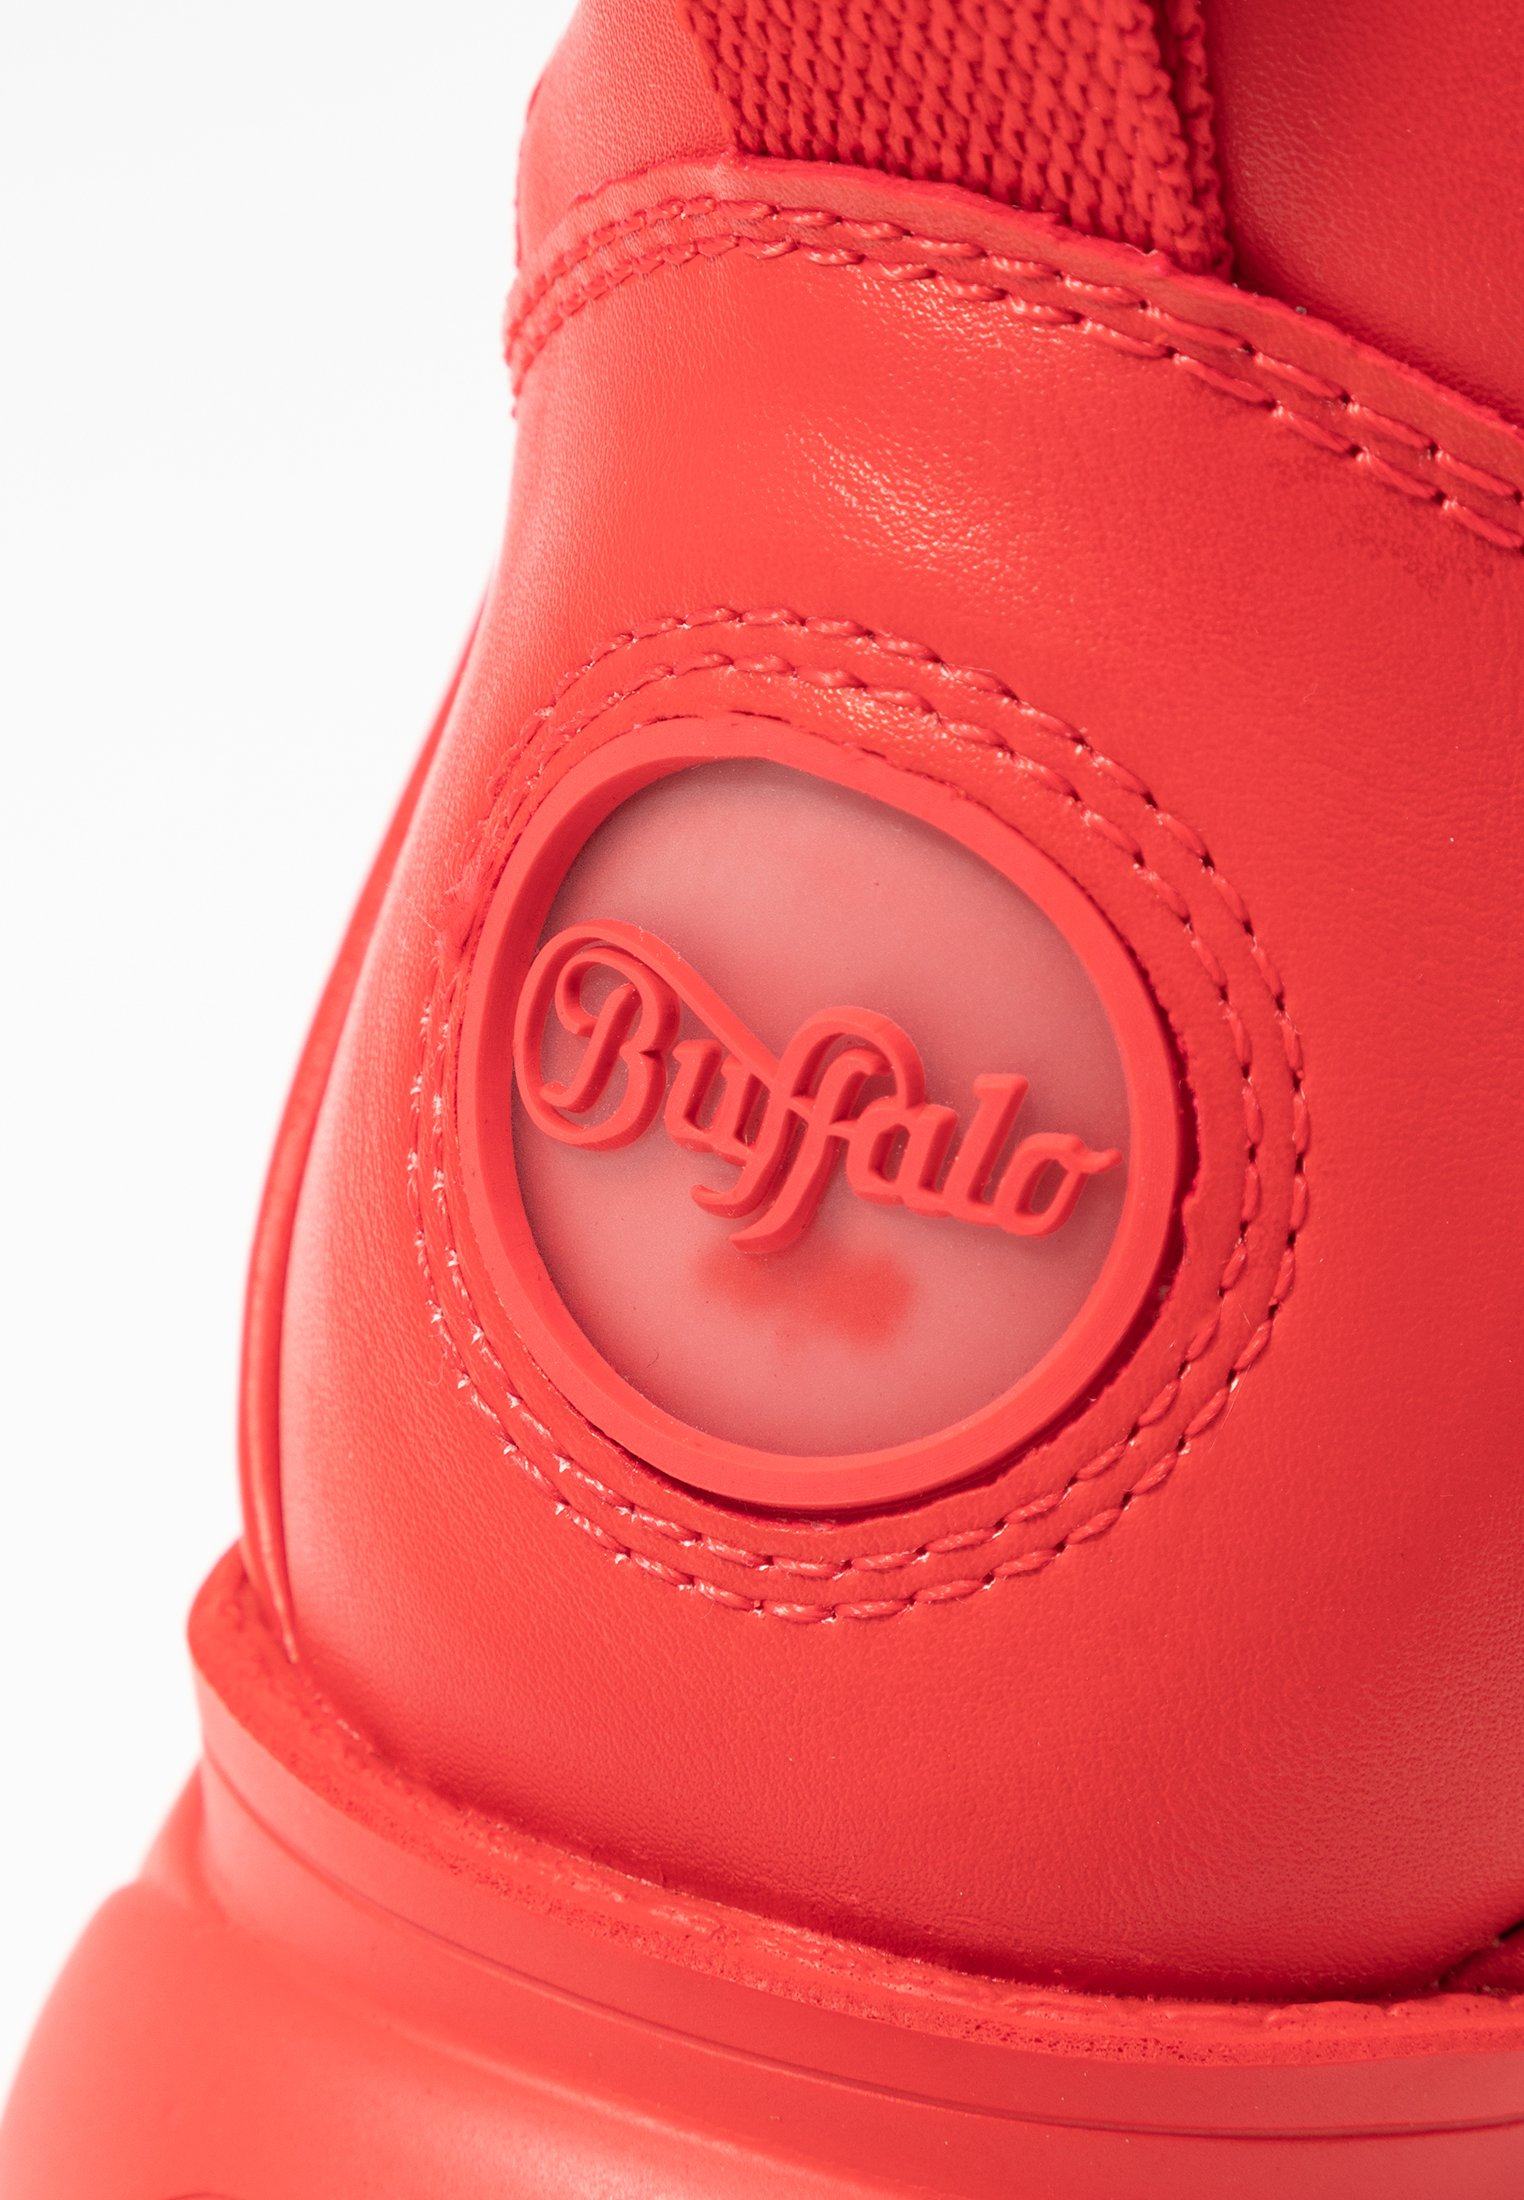 Buffalo CORIN Joggesko red Zalando.no